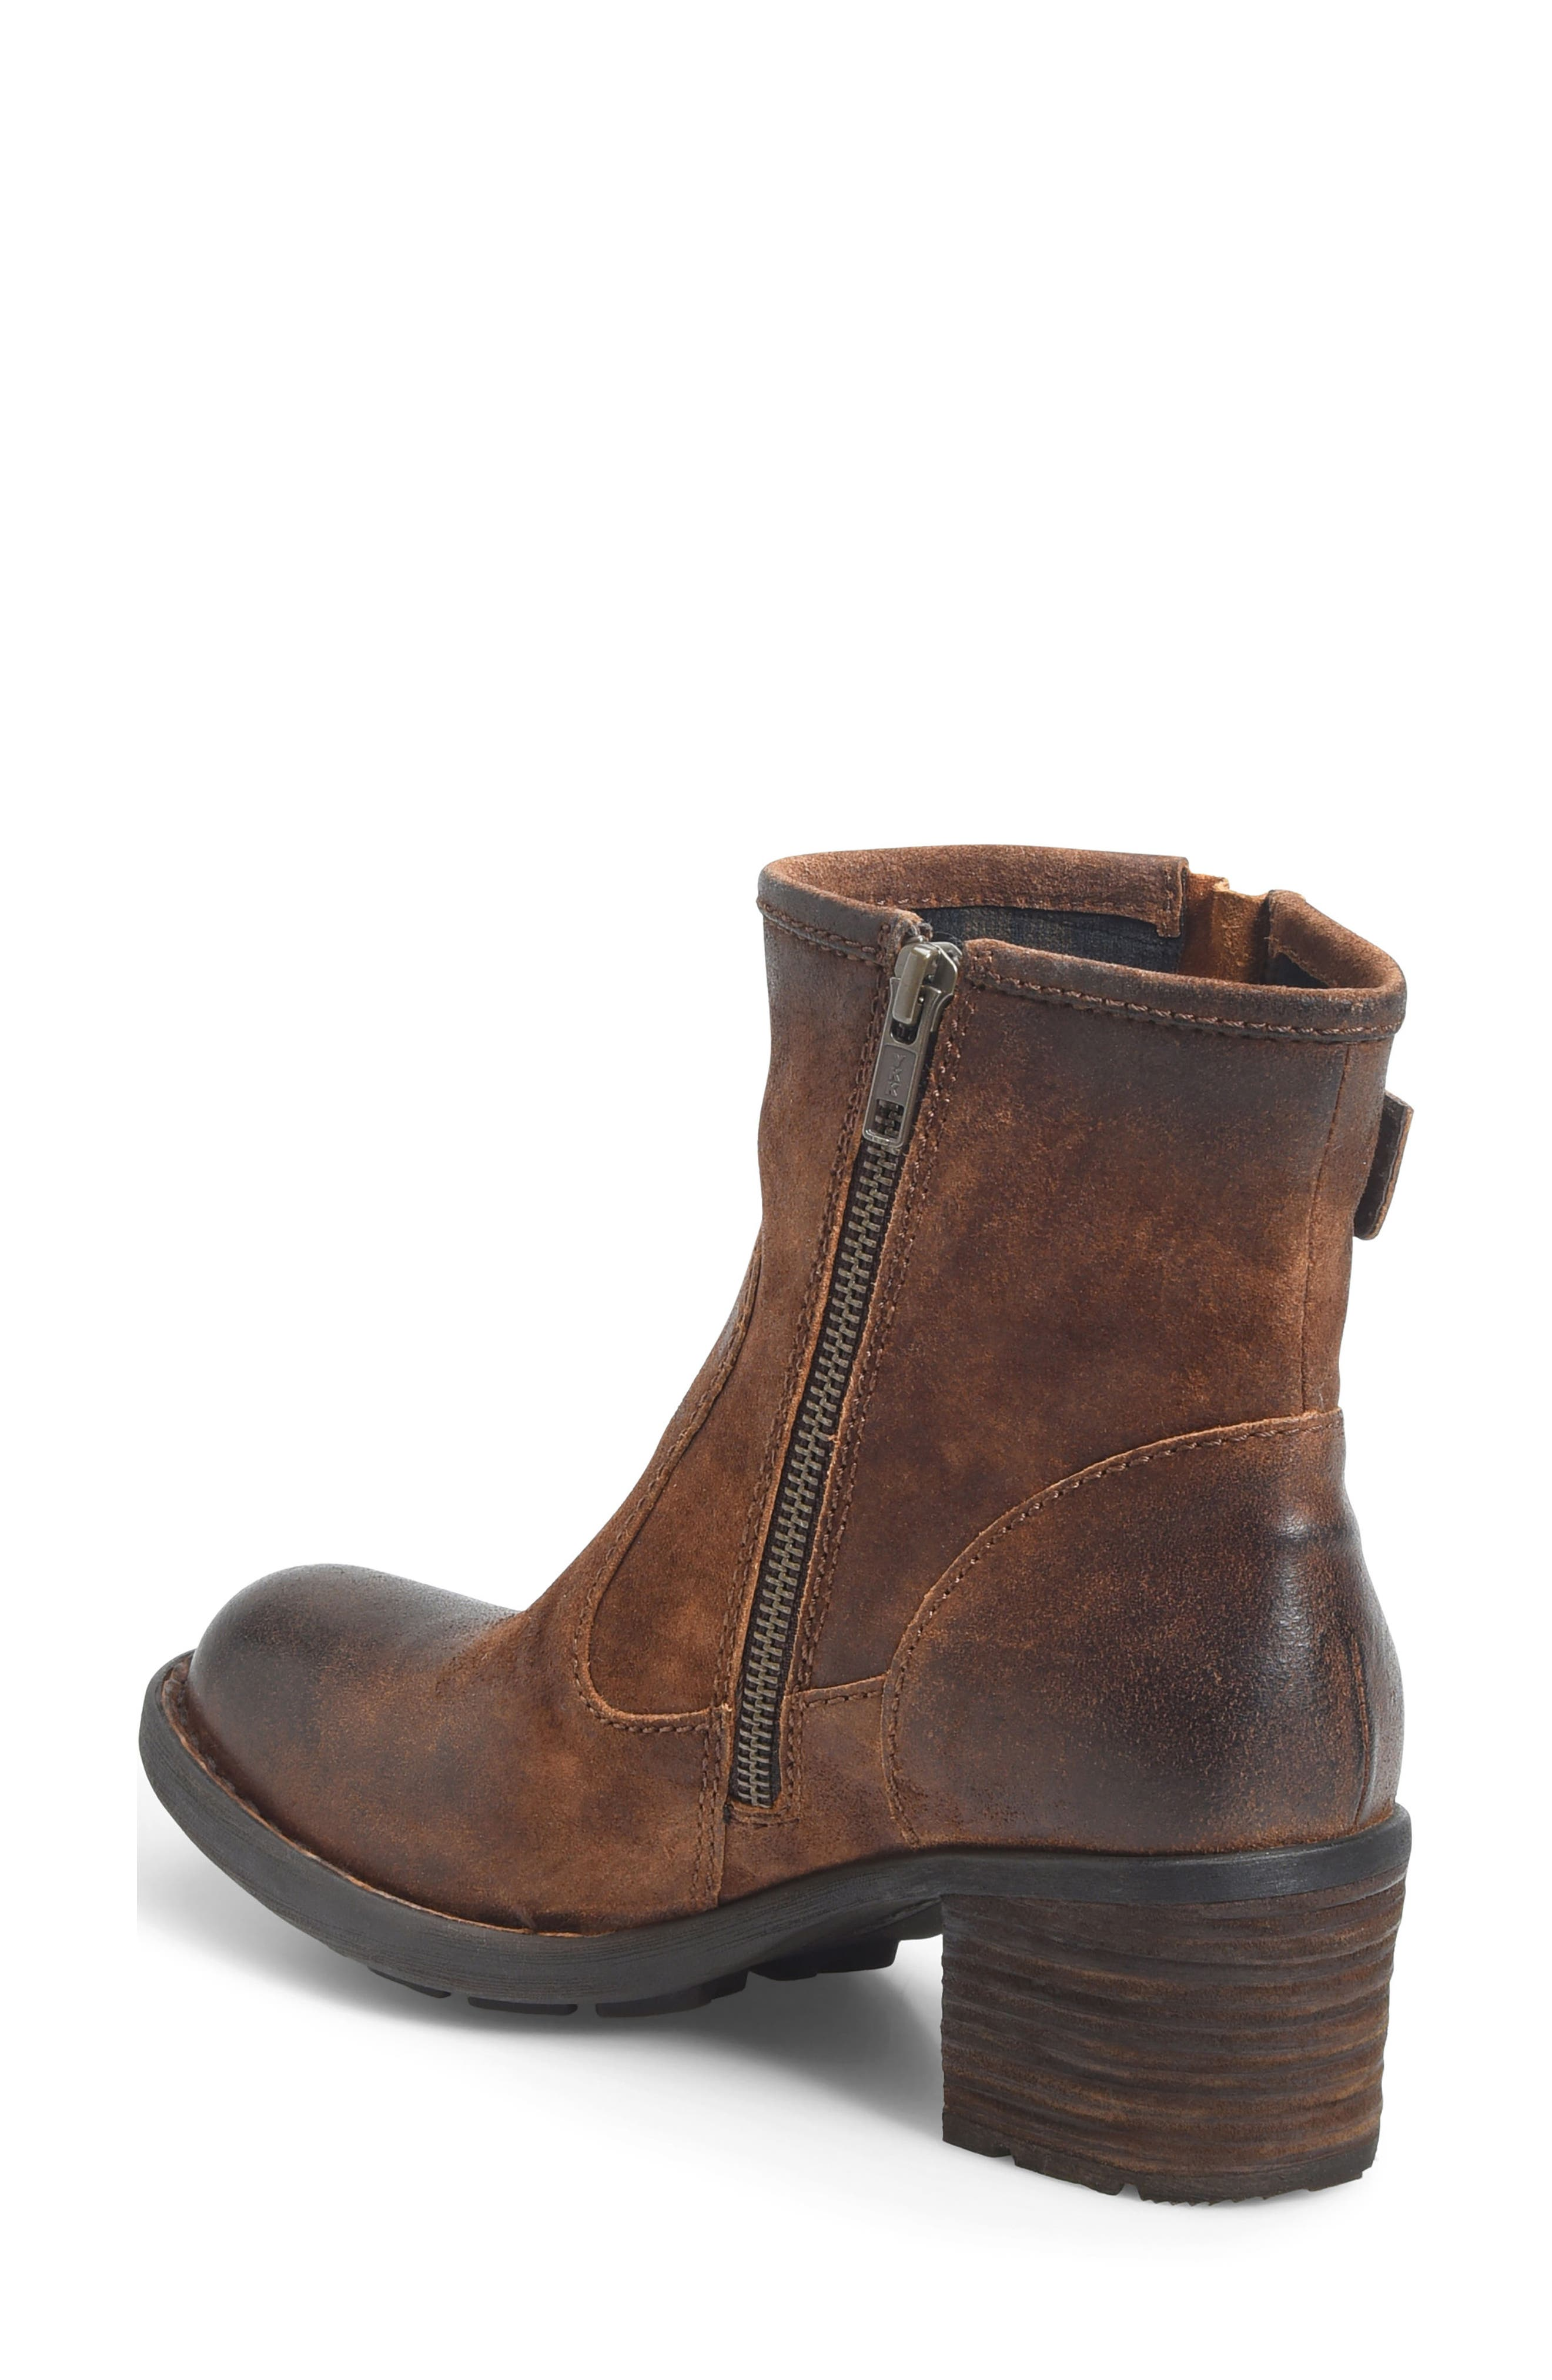 Gunn Engineer Bootie,                             Alternate thumbnail 2, color,                             Rust Distressed Leather